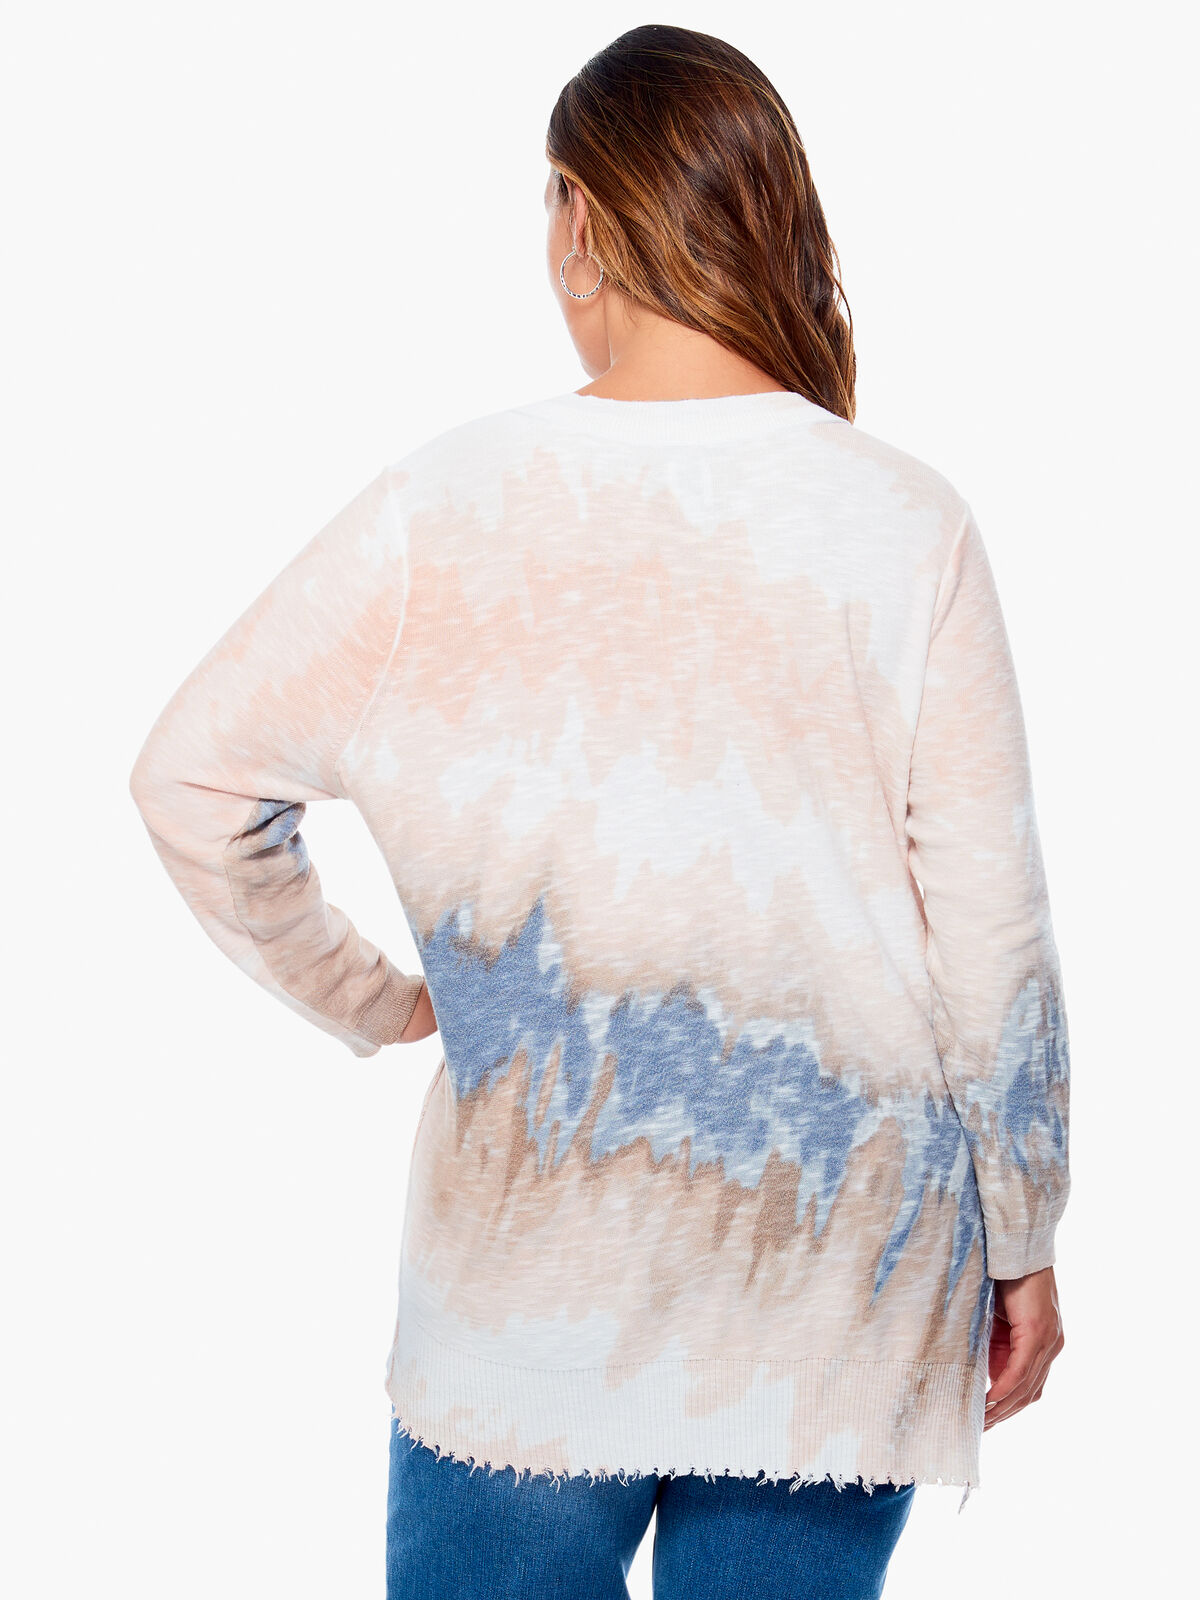 Find Your Angle Sweater